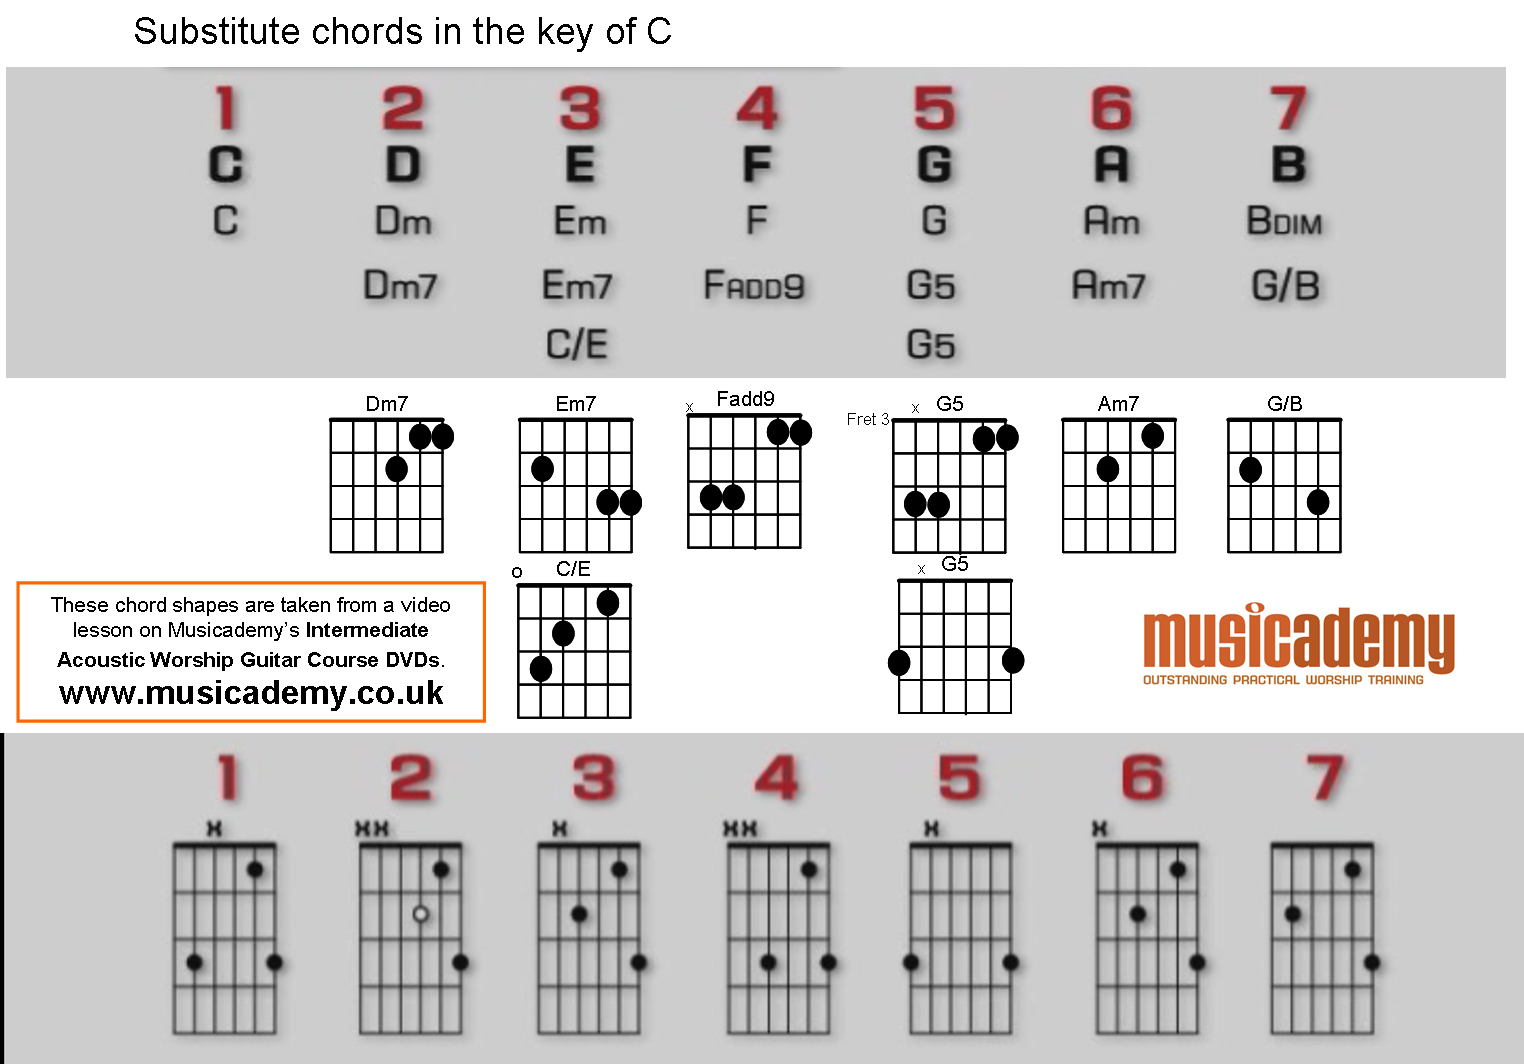 Substitute chords for the key of C